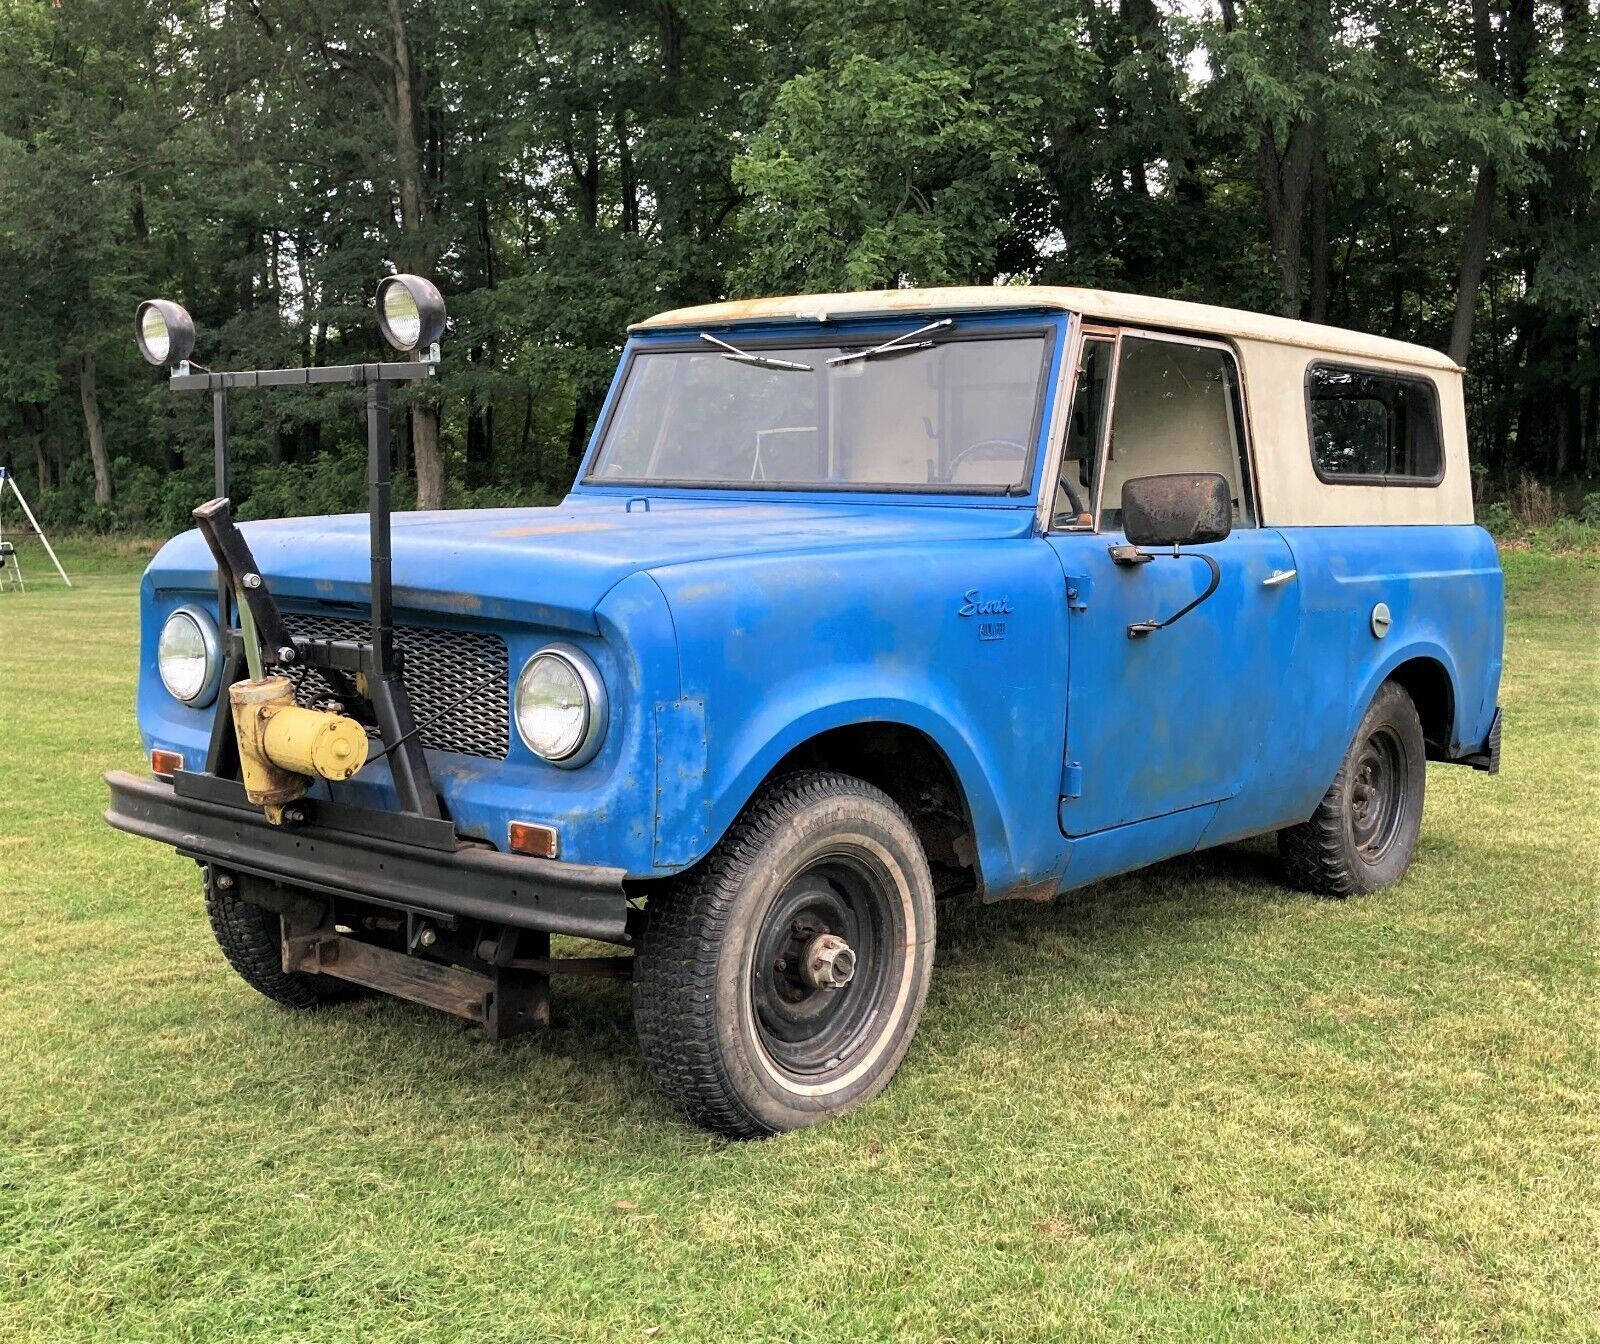 1963 International Harvester Scout 80 4 Cyl, 3 Speed, w/ Snow Plow